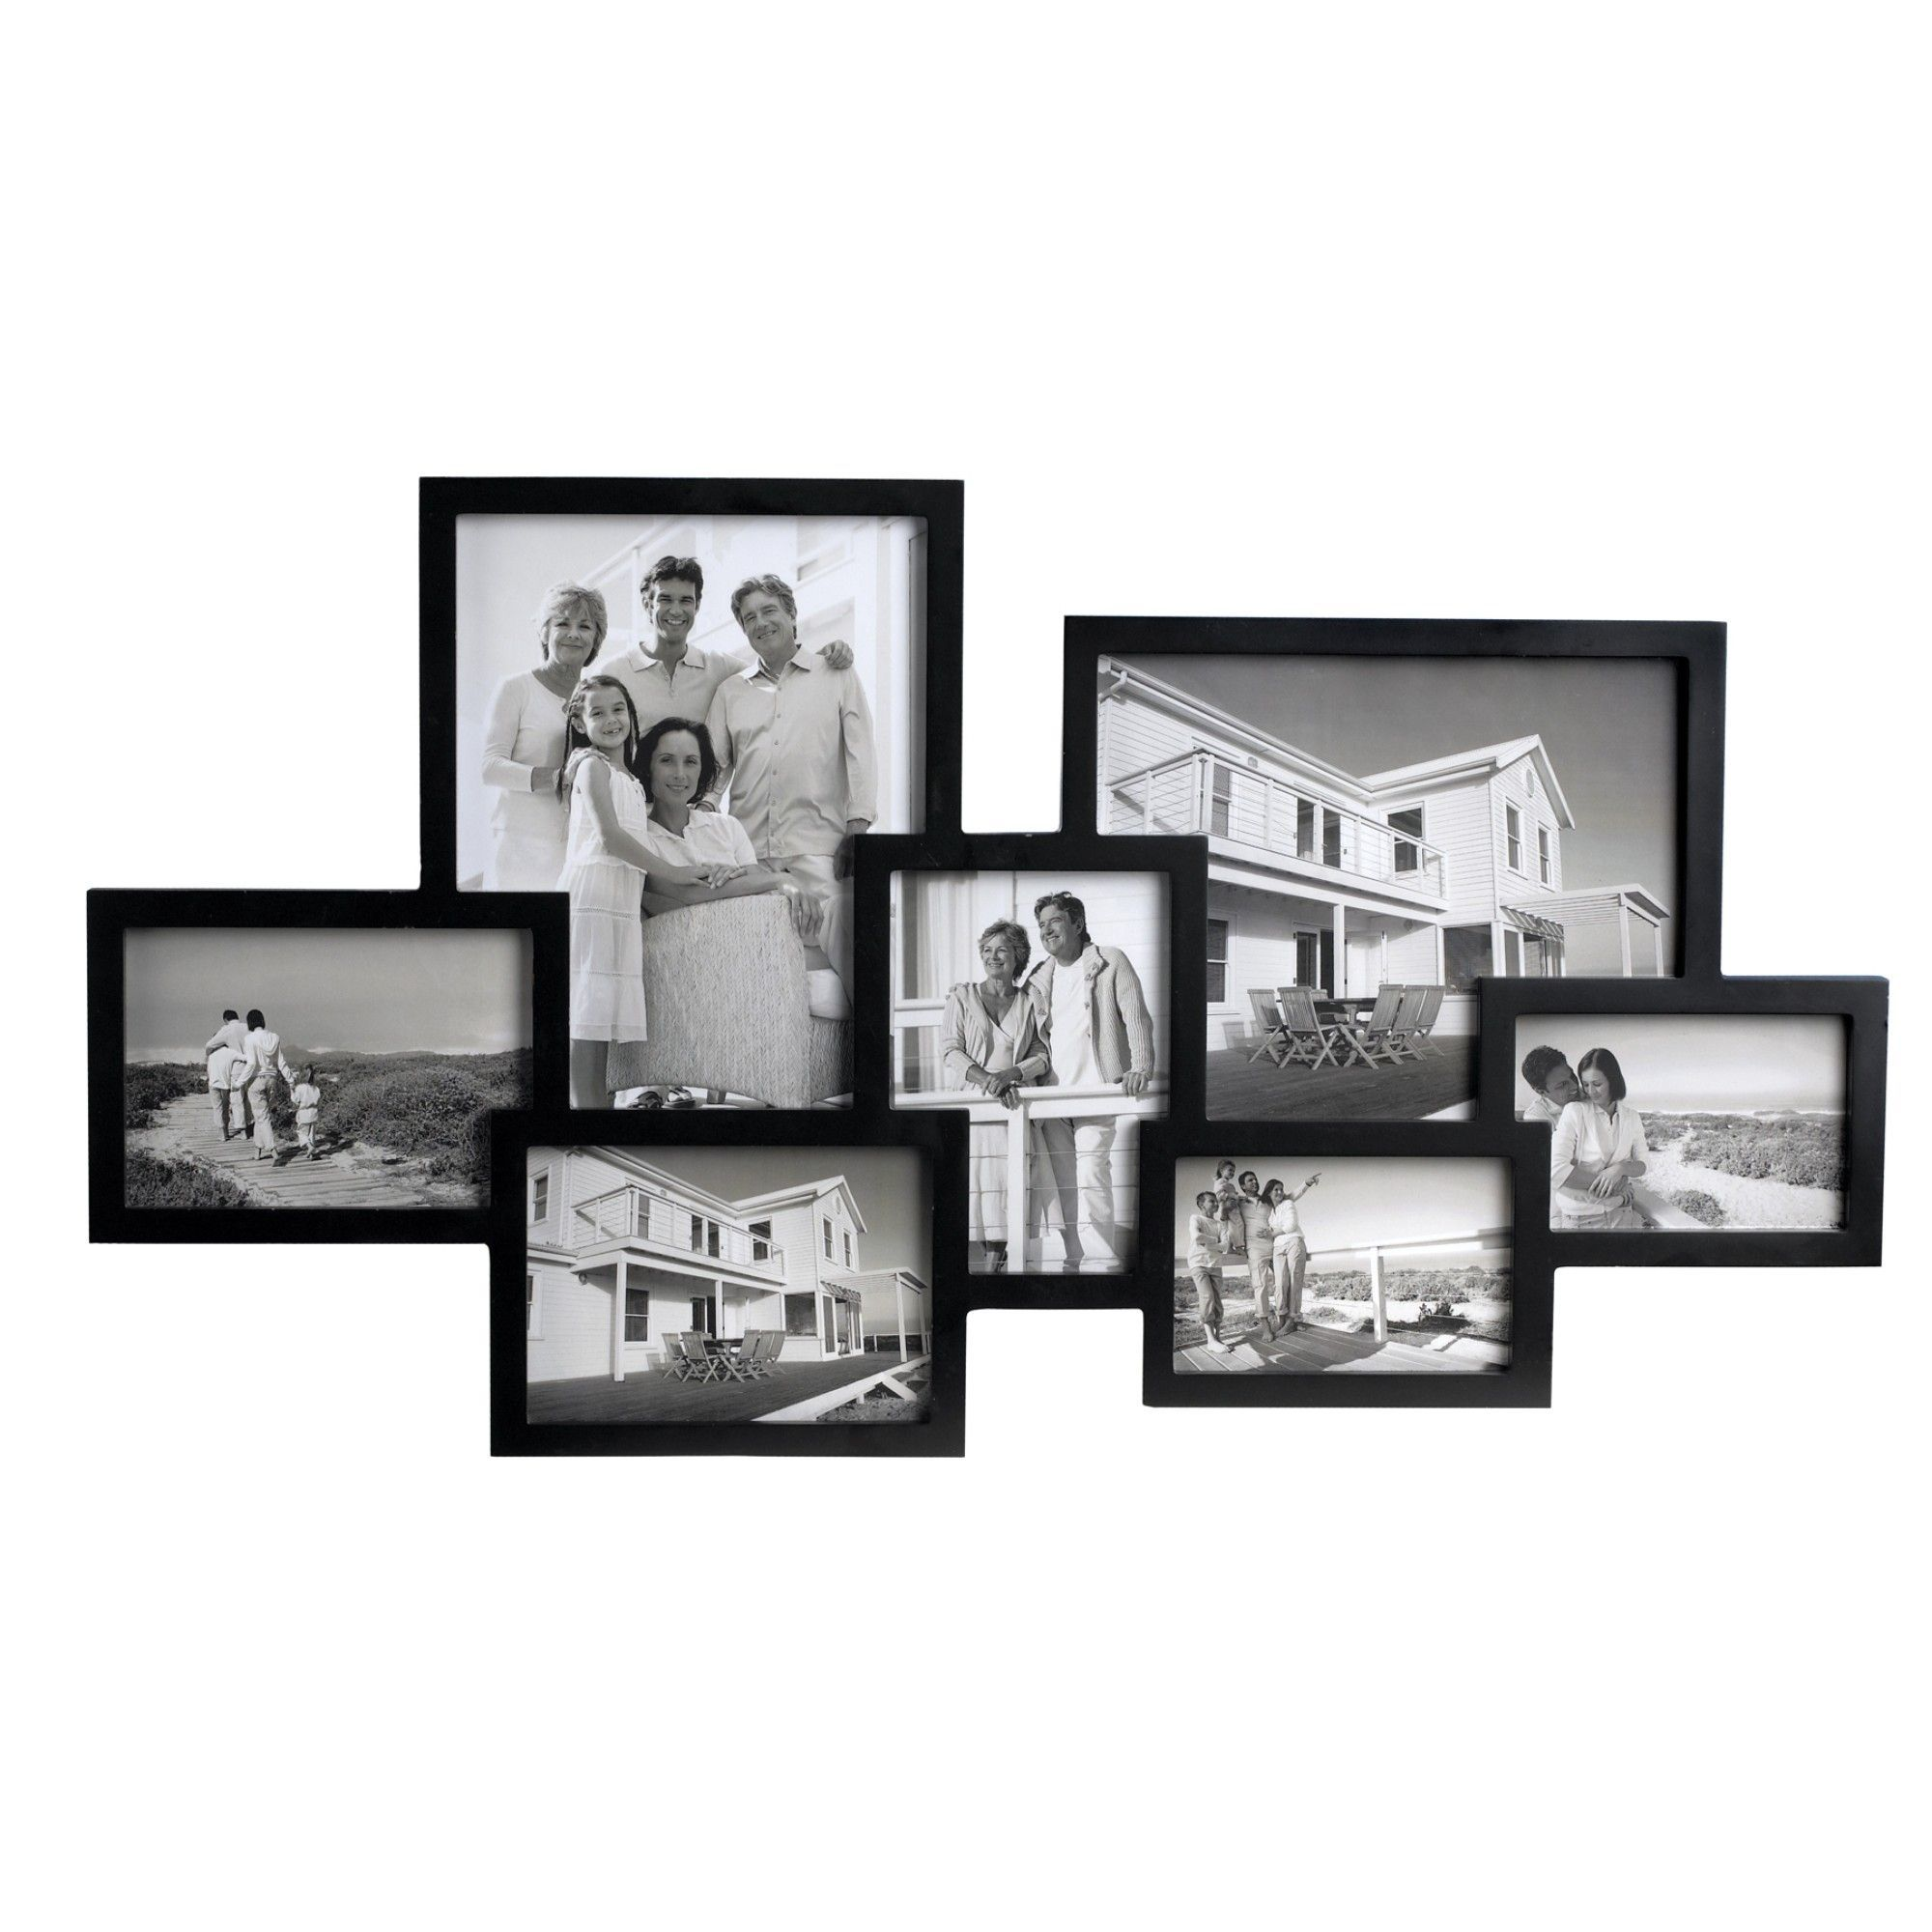 7 Piece Wall Picture Frame Set | Wall picture frames, Picture frame ...